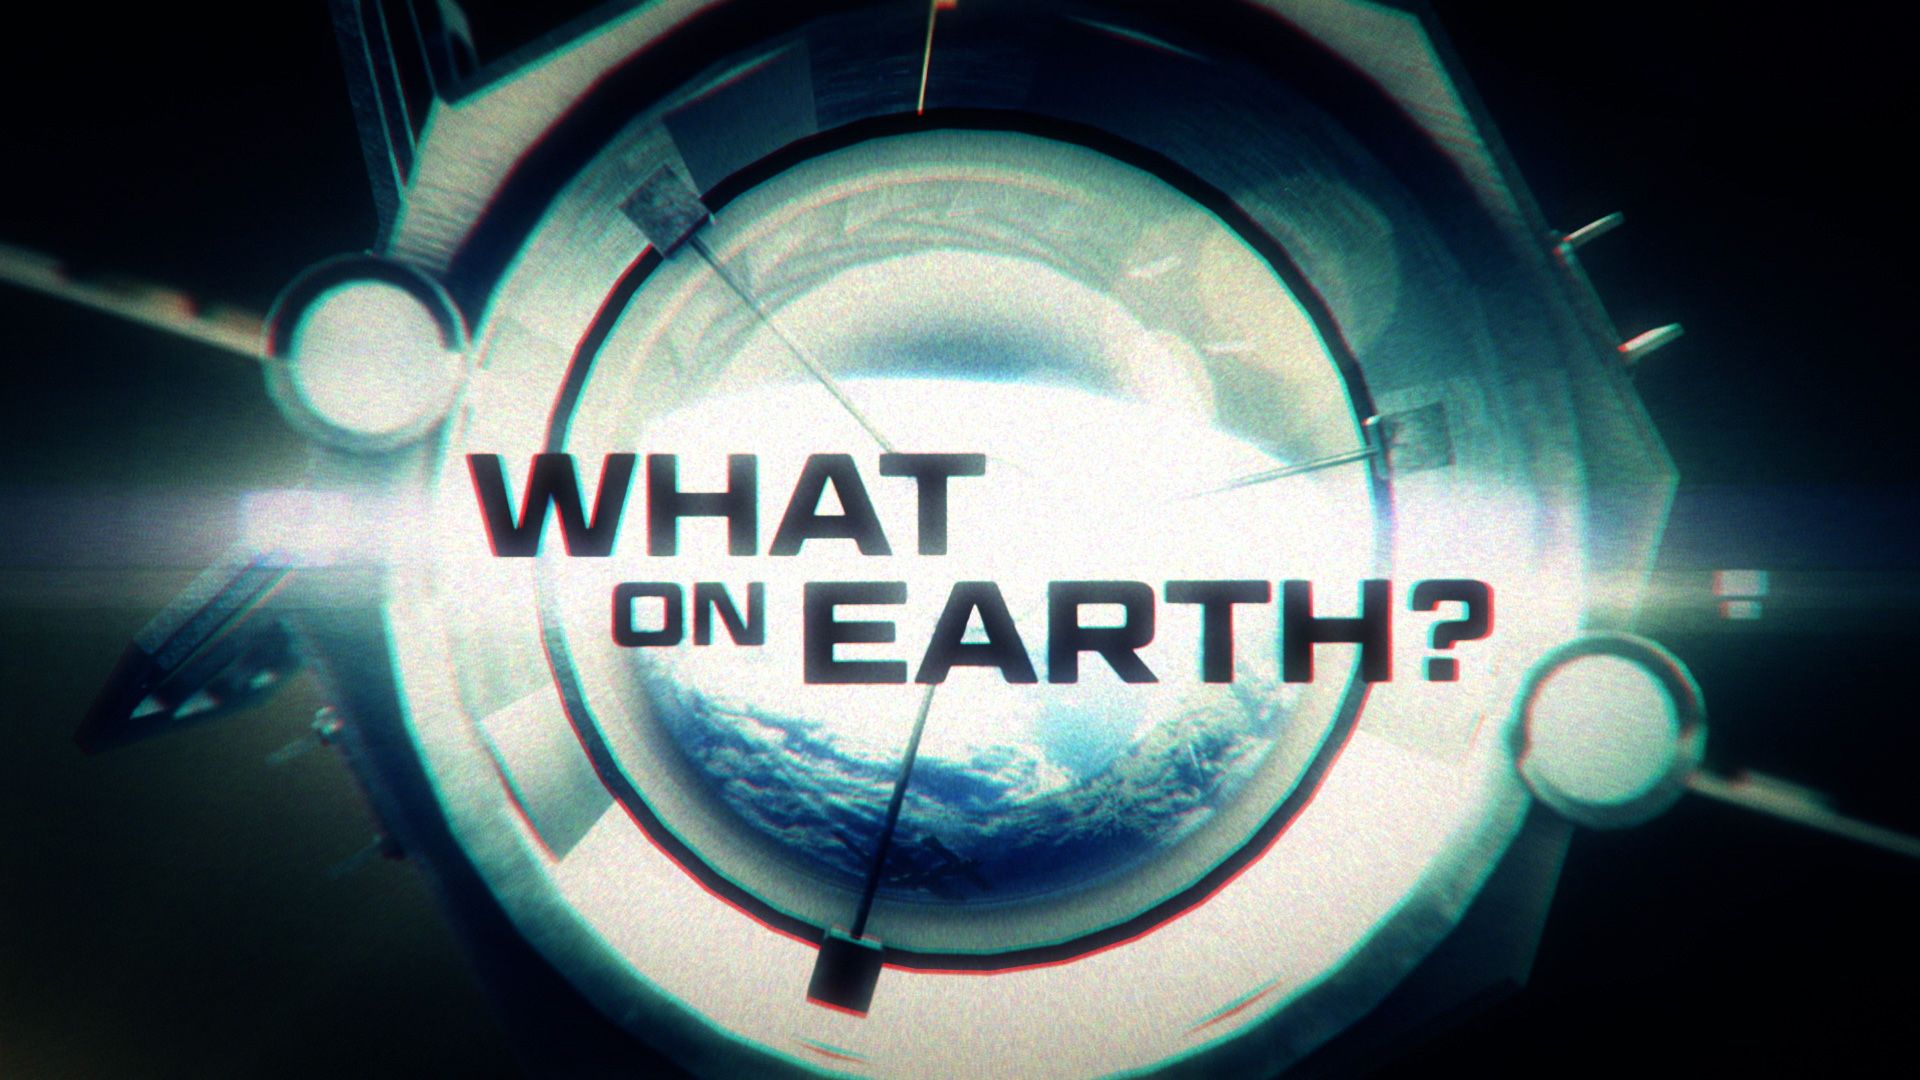 what_on_earth-screen14.jpg